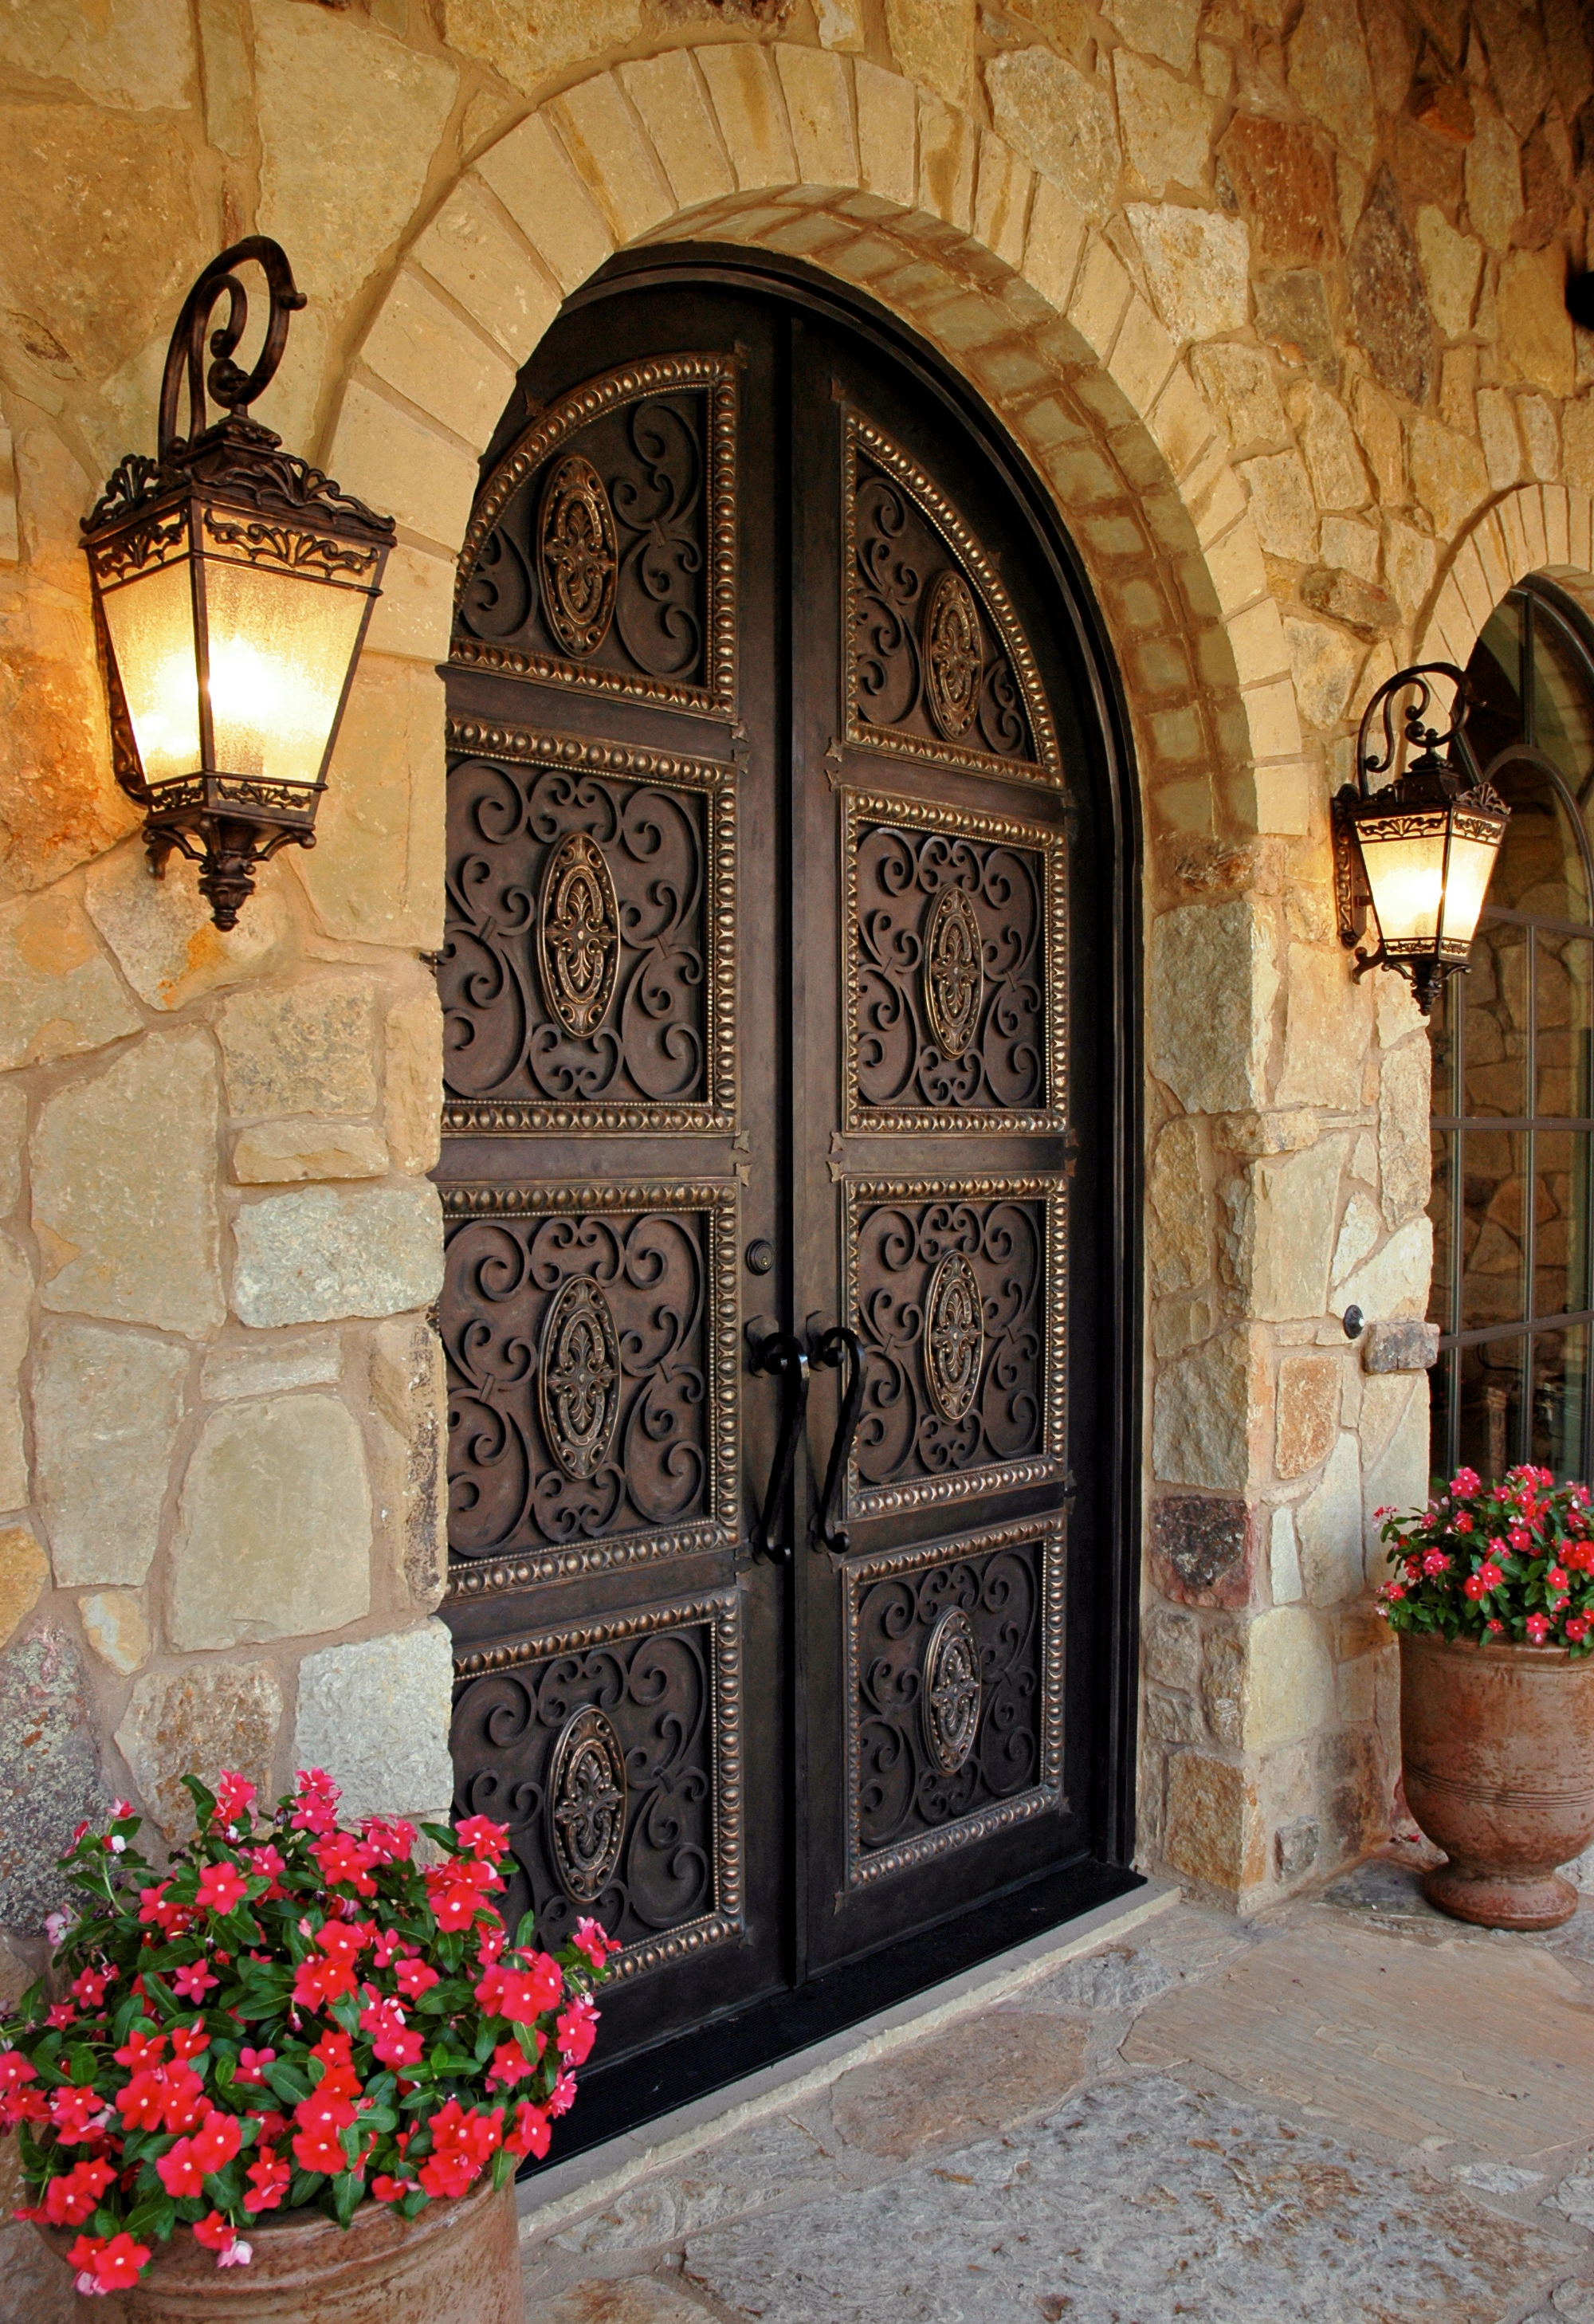 2916 #AD1E2A Grand Doors Website Offers New Features For Remolding An Entryway image Mediterranean Style Entry Doors 39632000